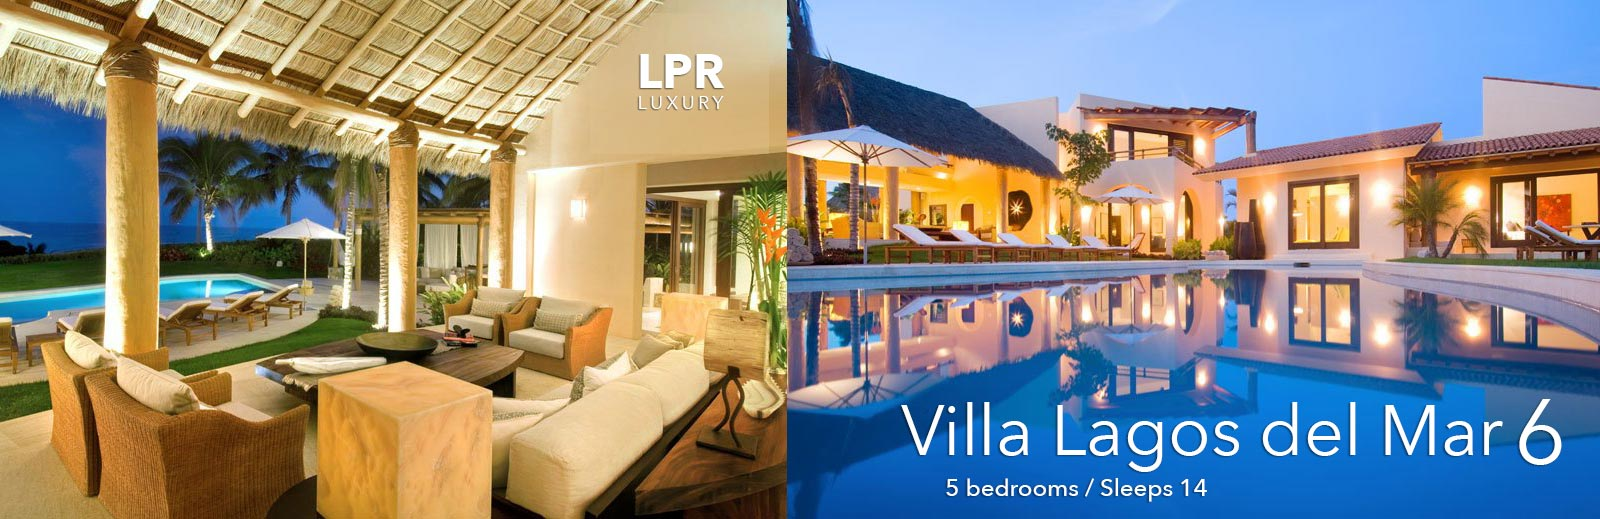 Villa Lagos del Mar 6 - Punta Mita Resort - Mexico Vacation Rentals